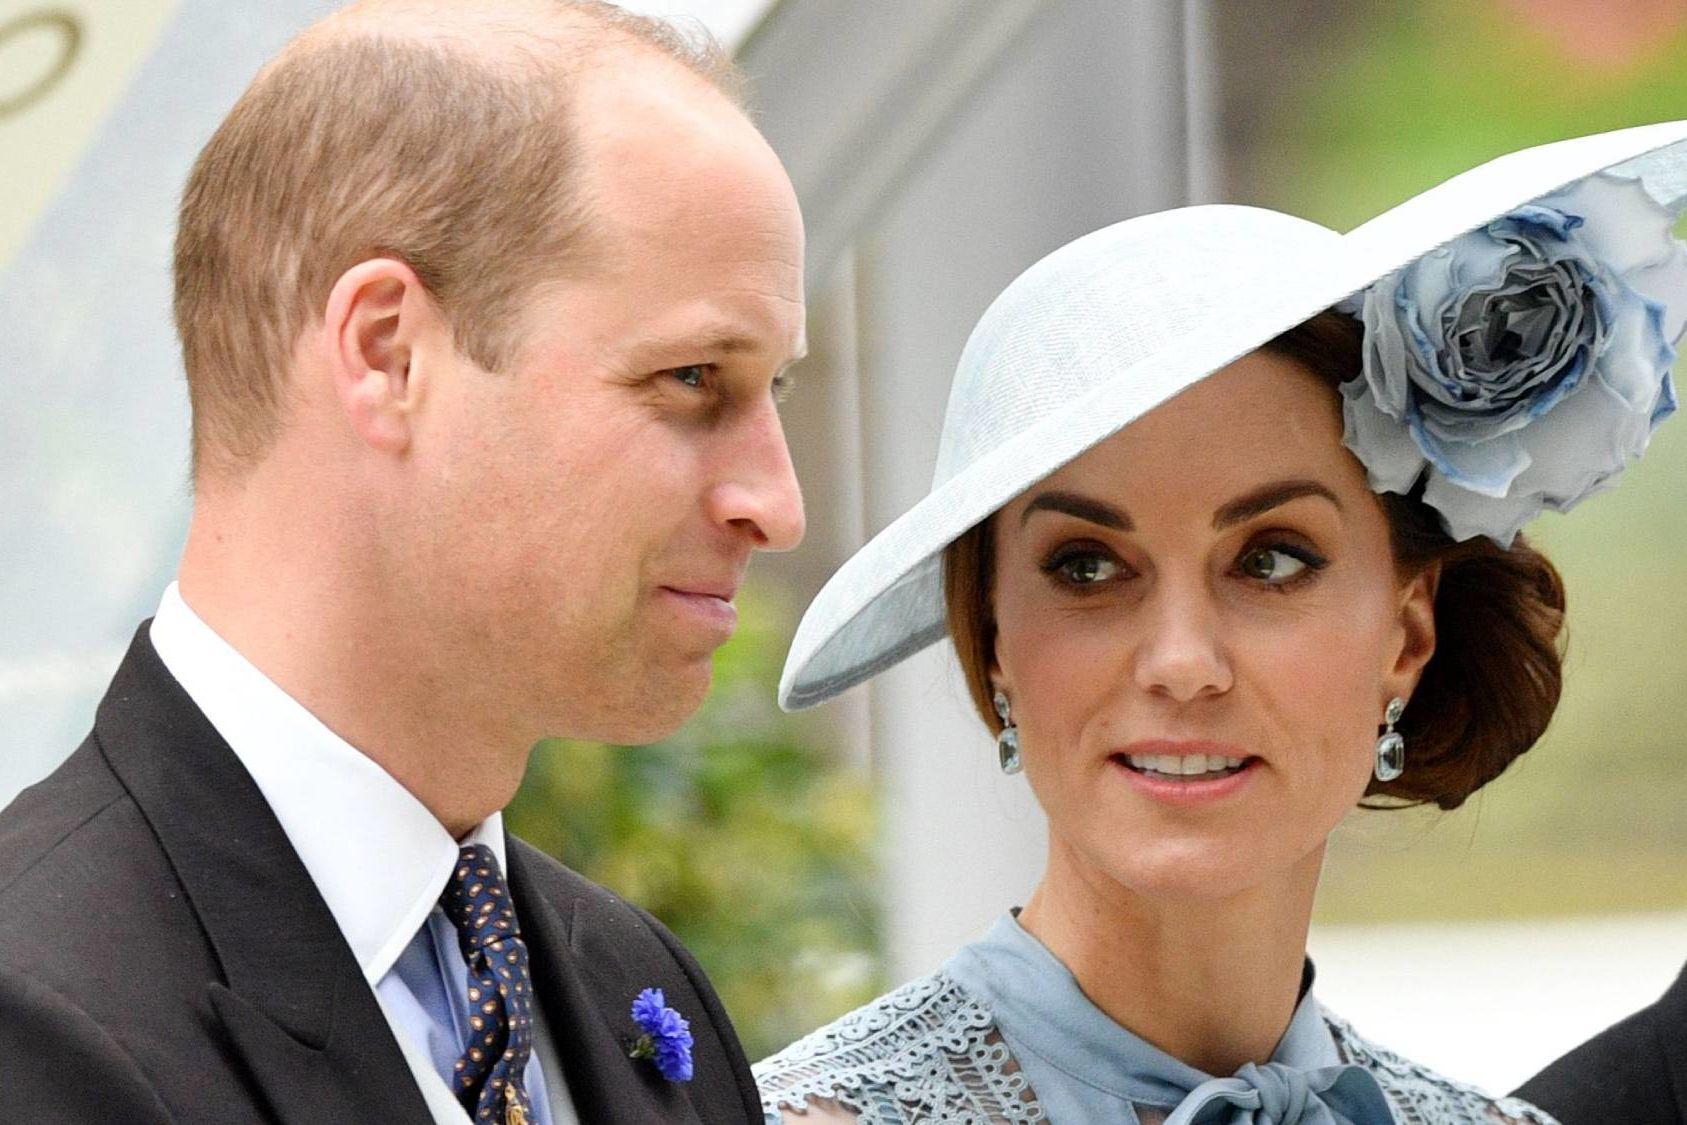 Kate's Homemade Gift For William is a Reminder of 'What's Really Important'